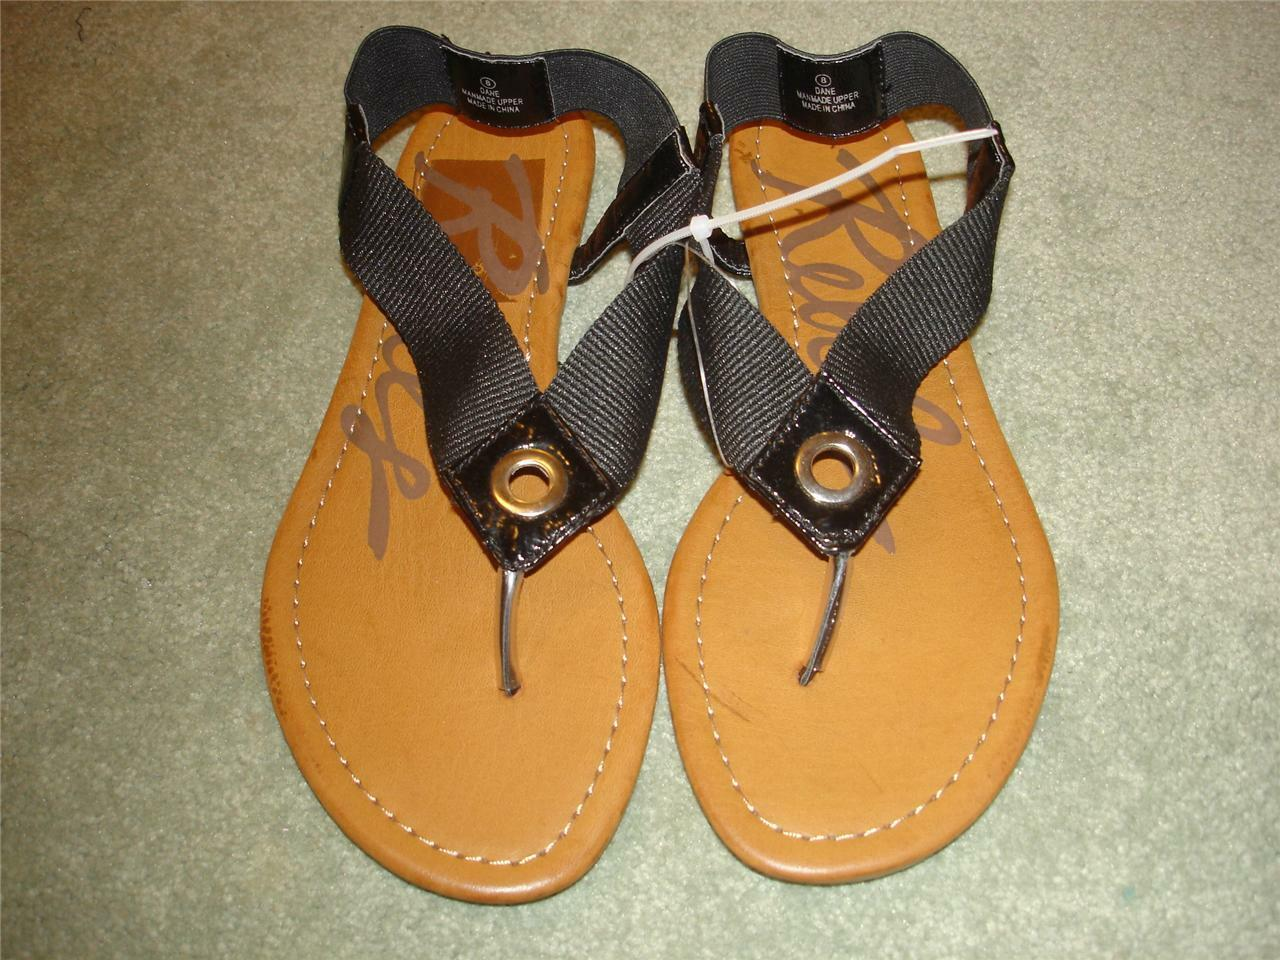 REBELS Flip Black Thong Toe Sandals Flip REBELS Flops Womens size 7 1/2   7.5  NEW c4eb9e